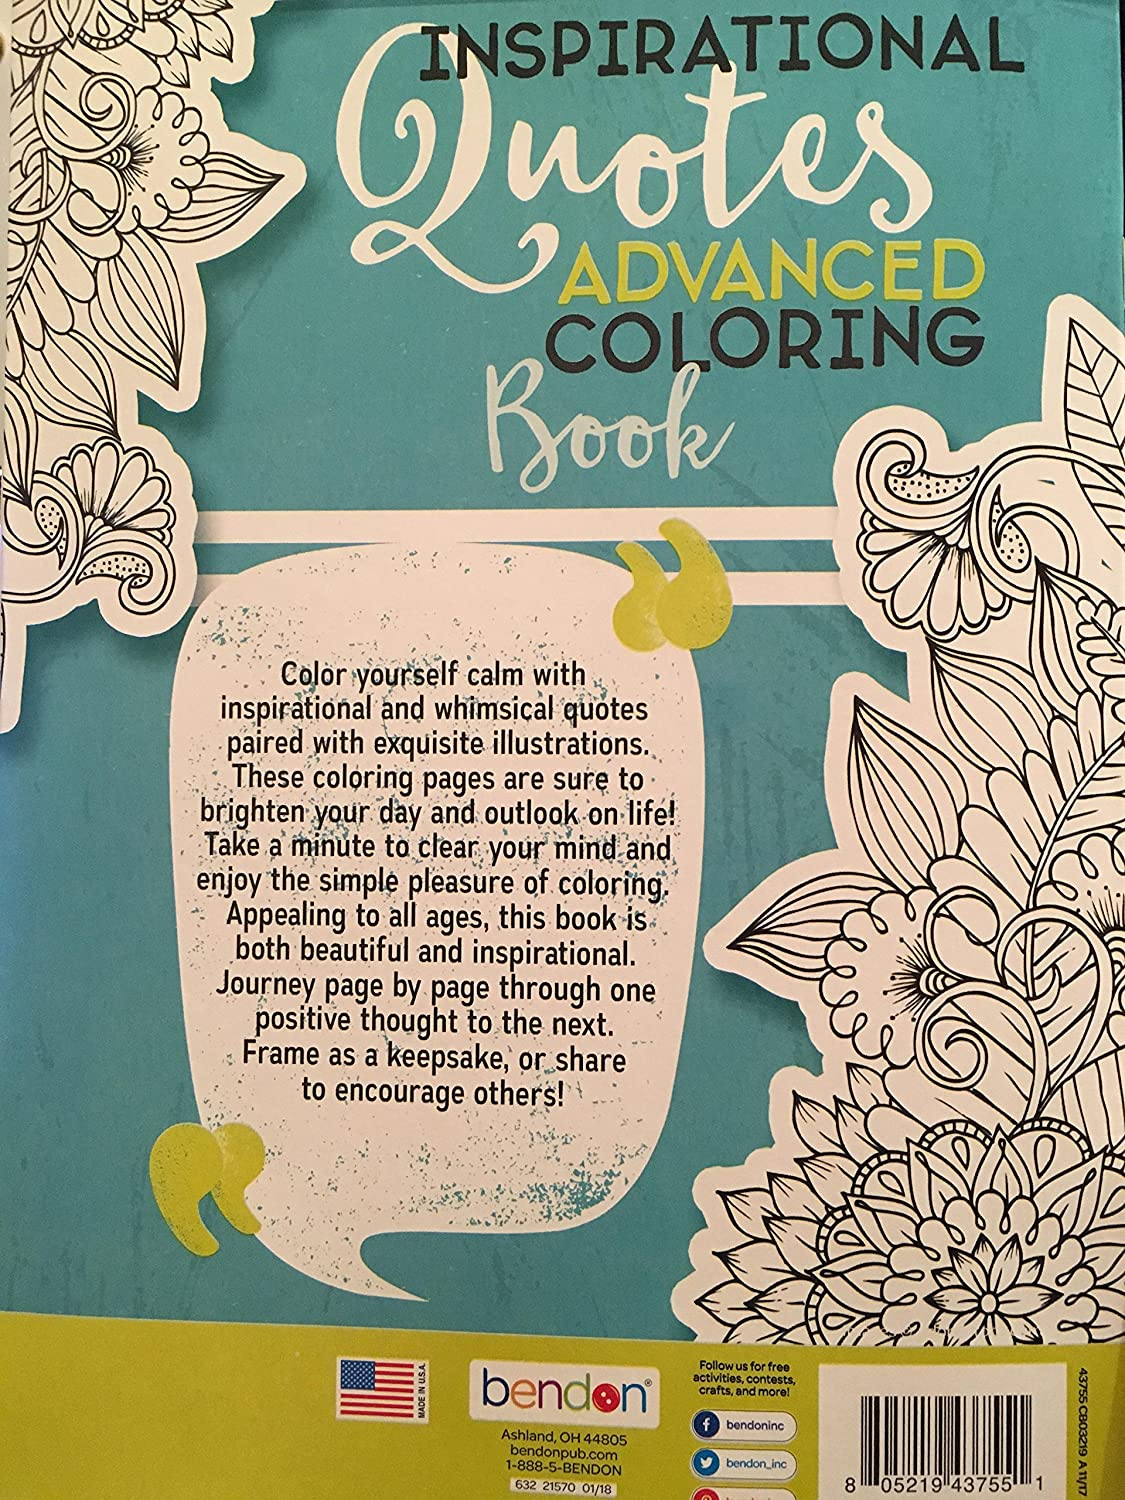 Inspirational Quotes Advanced Coloring Book